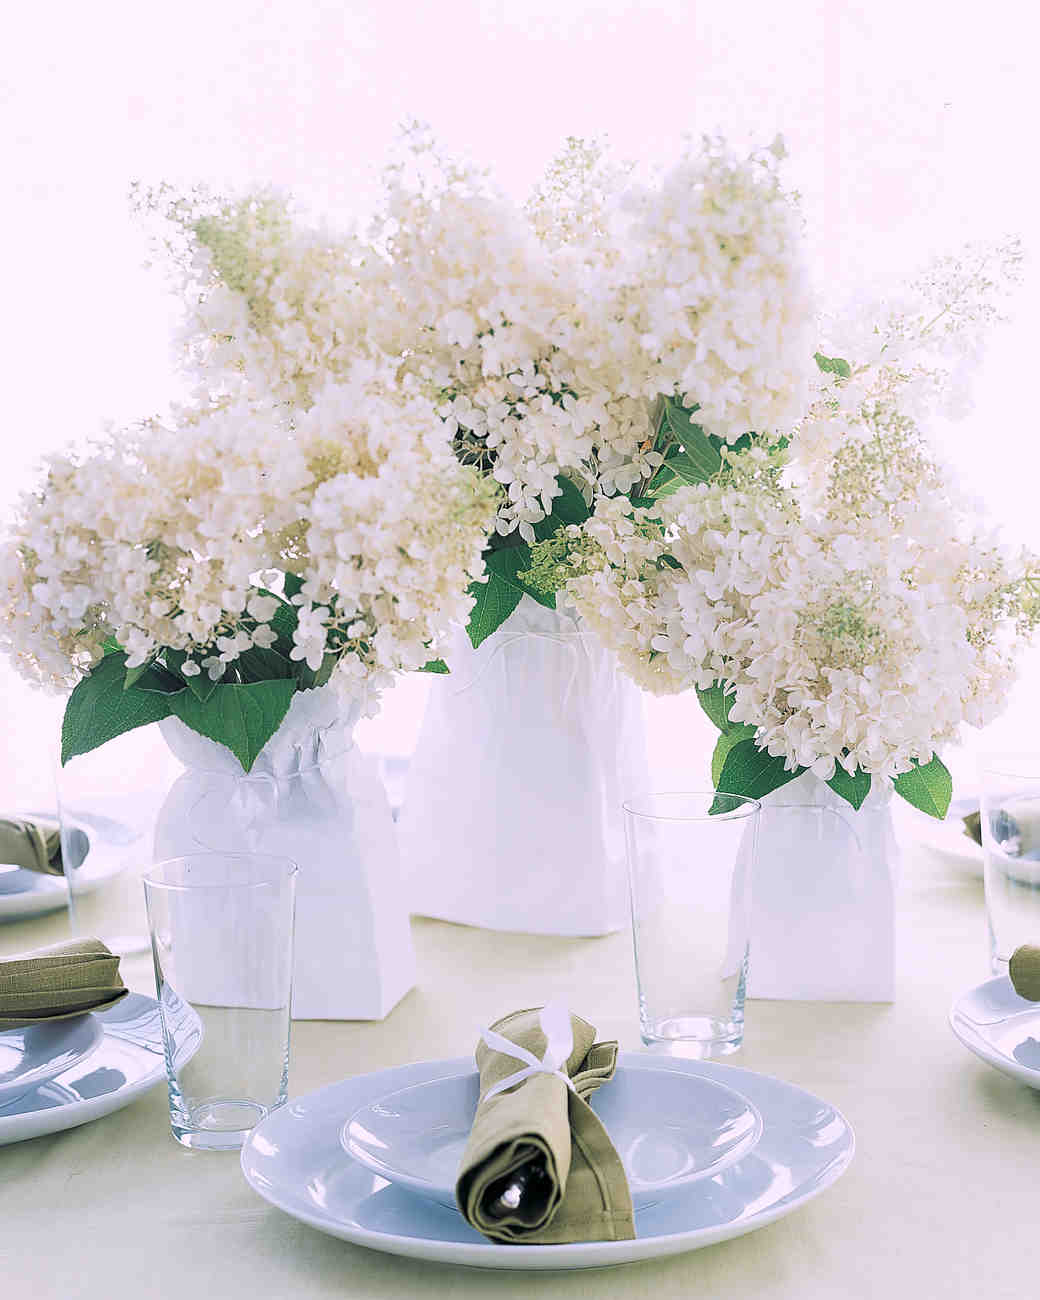 Simple Wedding Centerpieces Ideas: Affordable Wedding Centerpieces That Don't Look Cheap